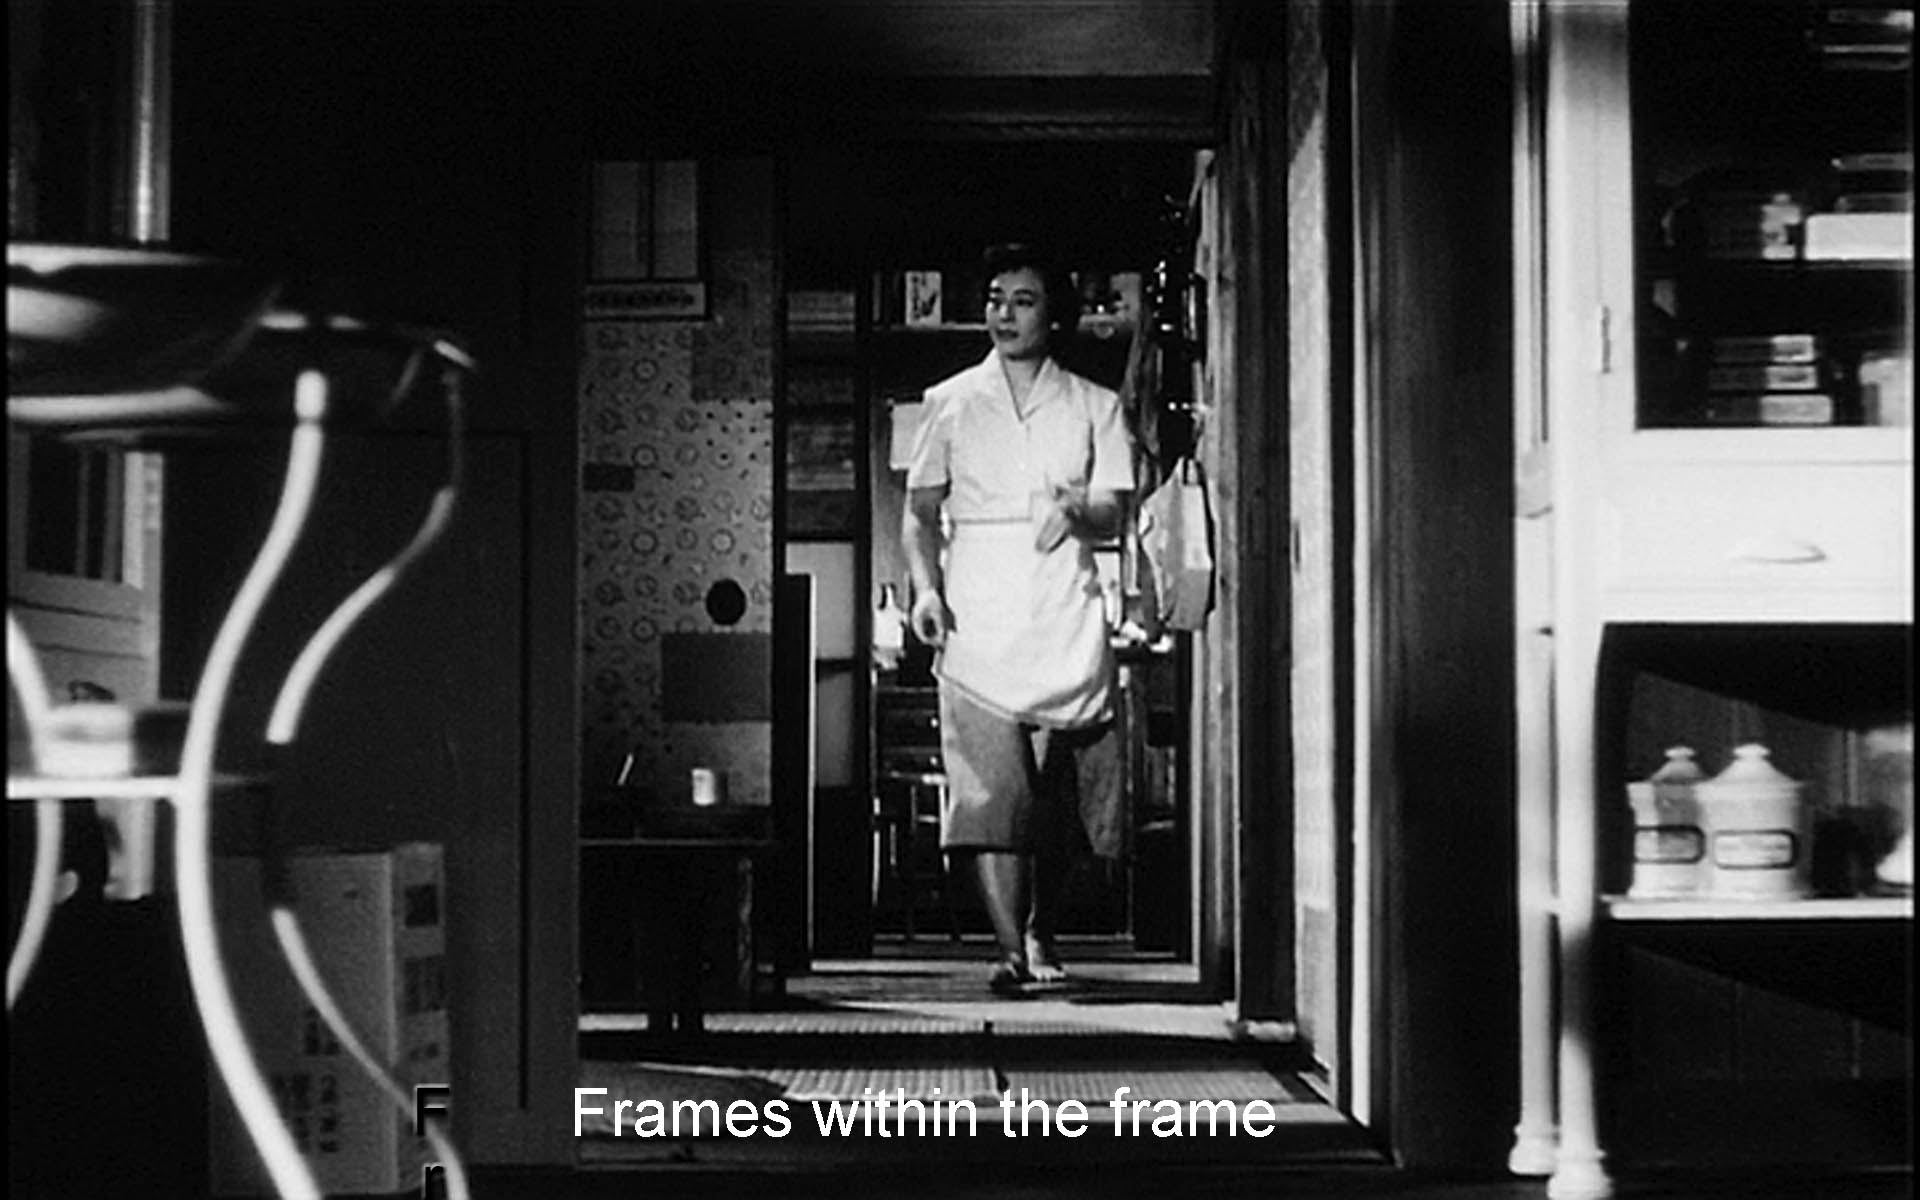 Frames within the frame